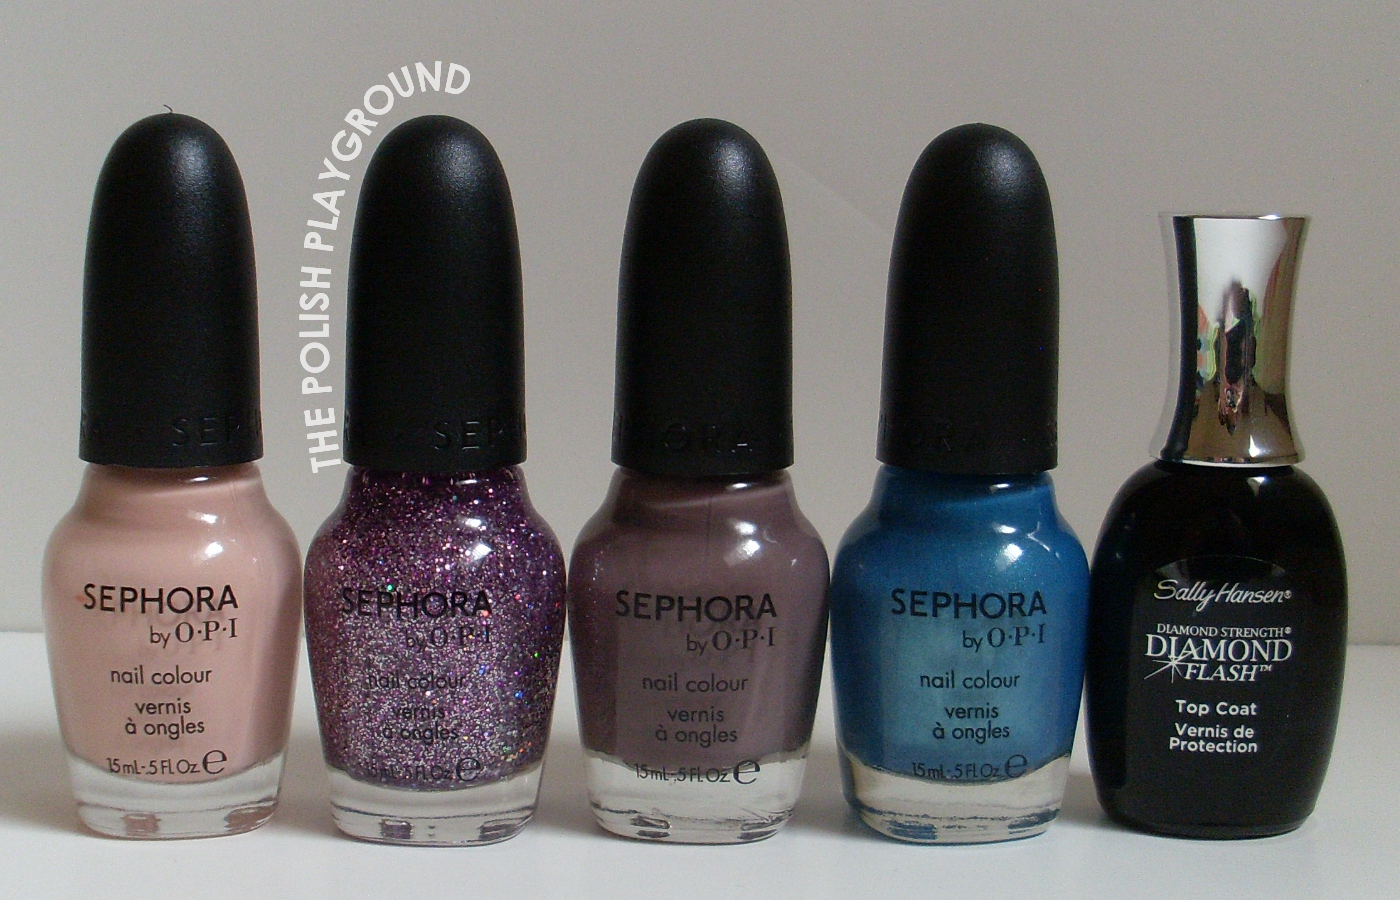 Sephora by OPI, Sally Hansen